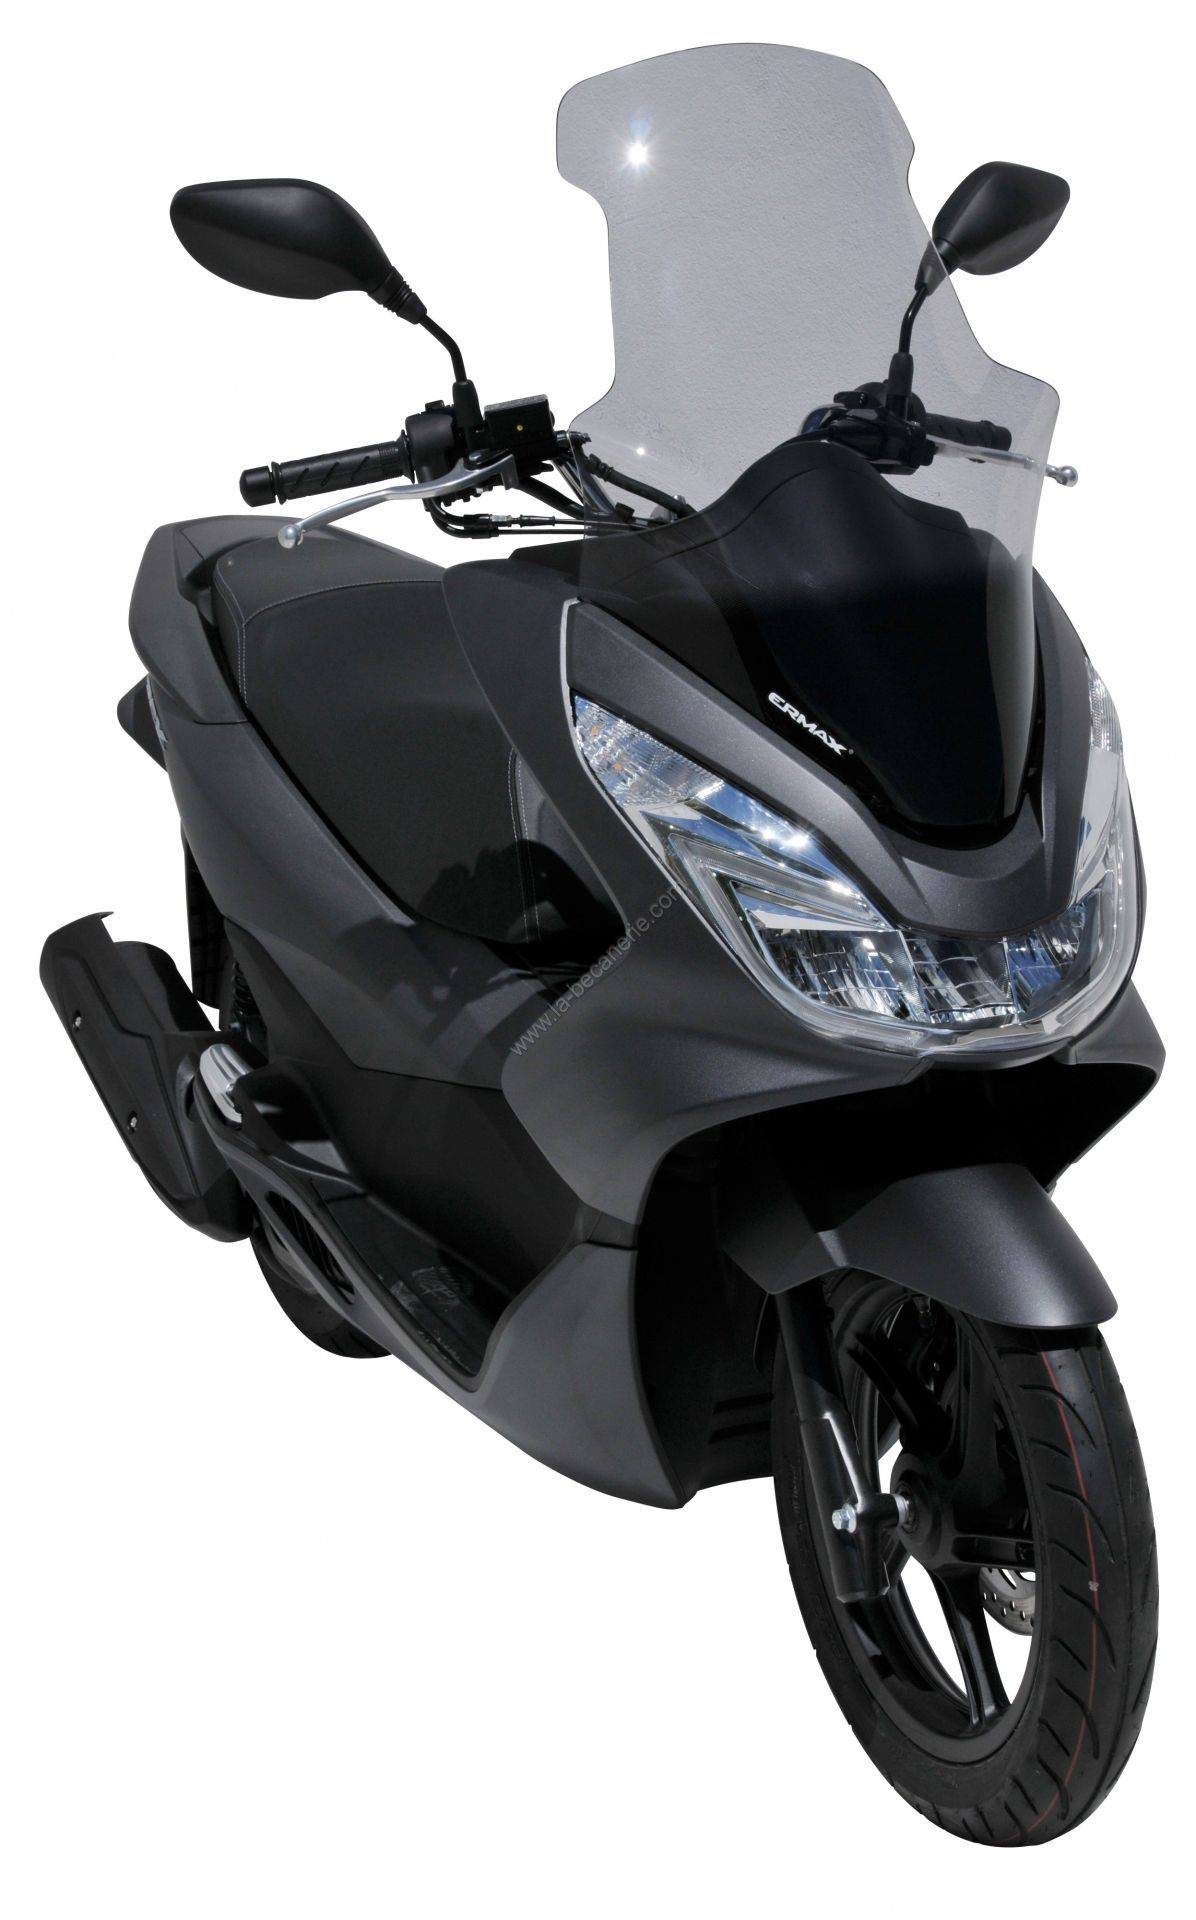 bulles honda pcx 125 car nage maxi scooter la b canerie. Black Bedroom Furniture Sets. Home Design Ideas